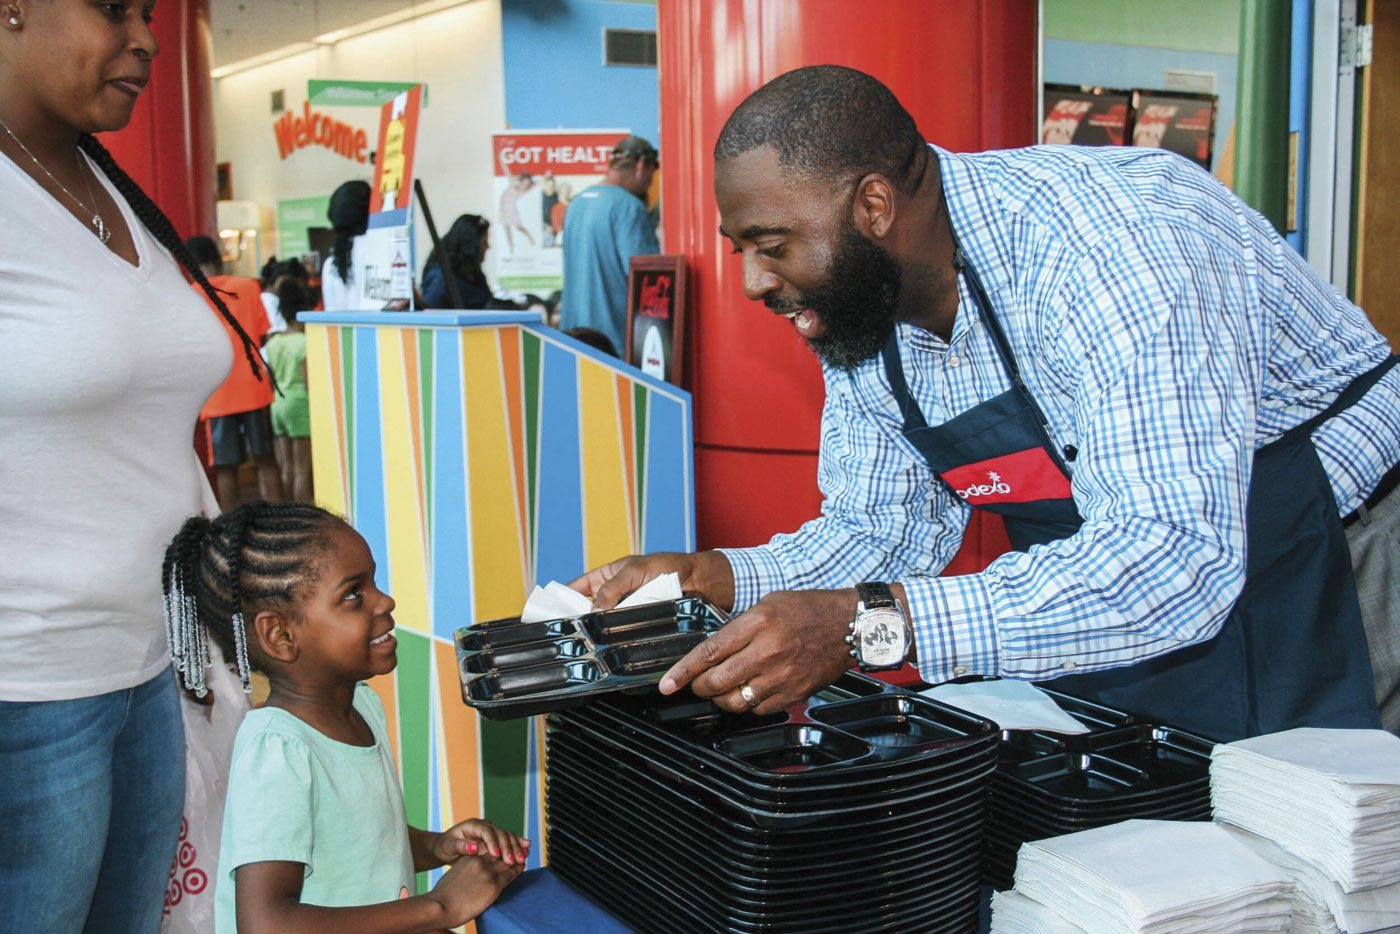 Image: Dr. Barron Davis handing a lunch tray to a smiling young student.